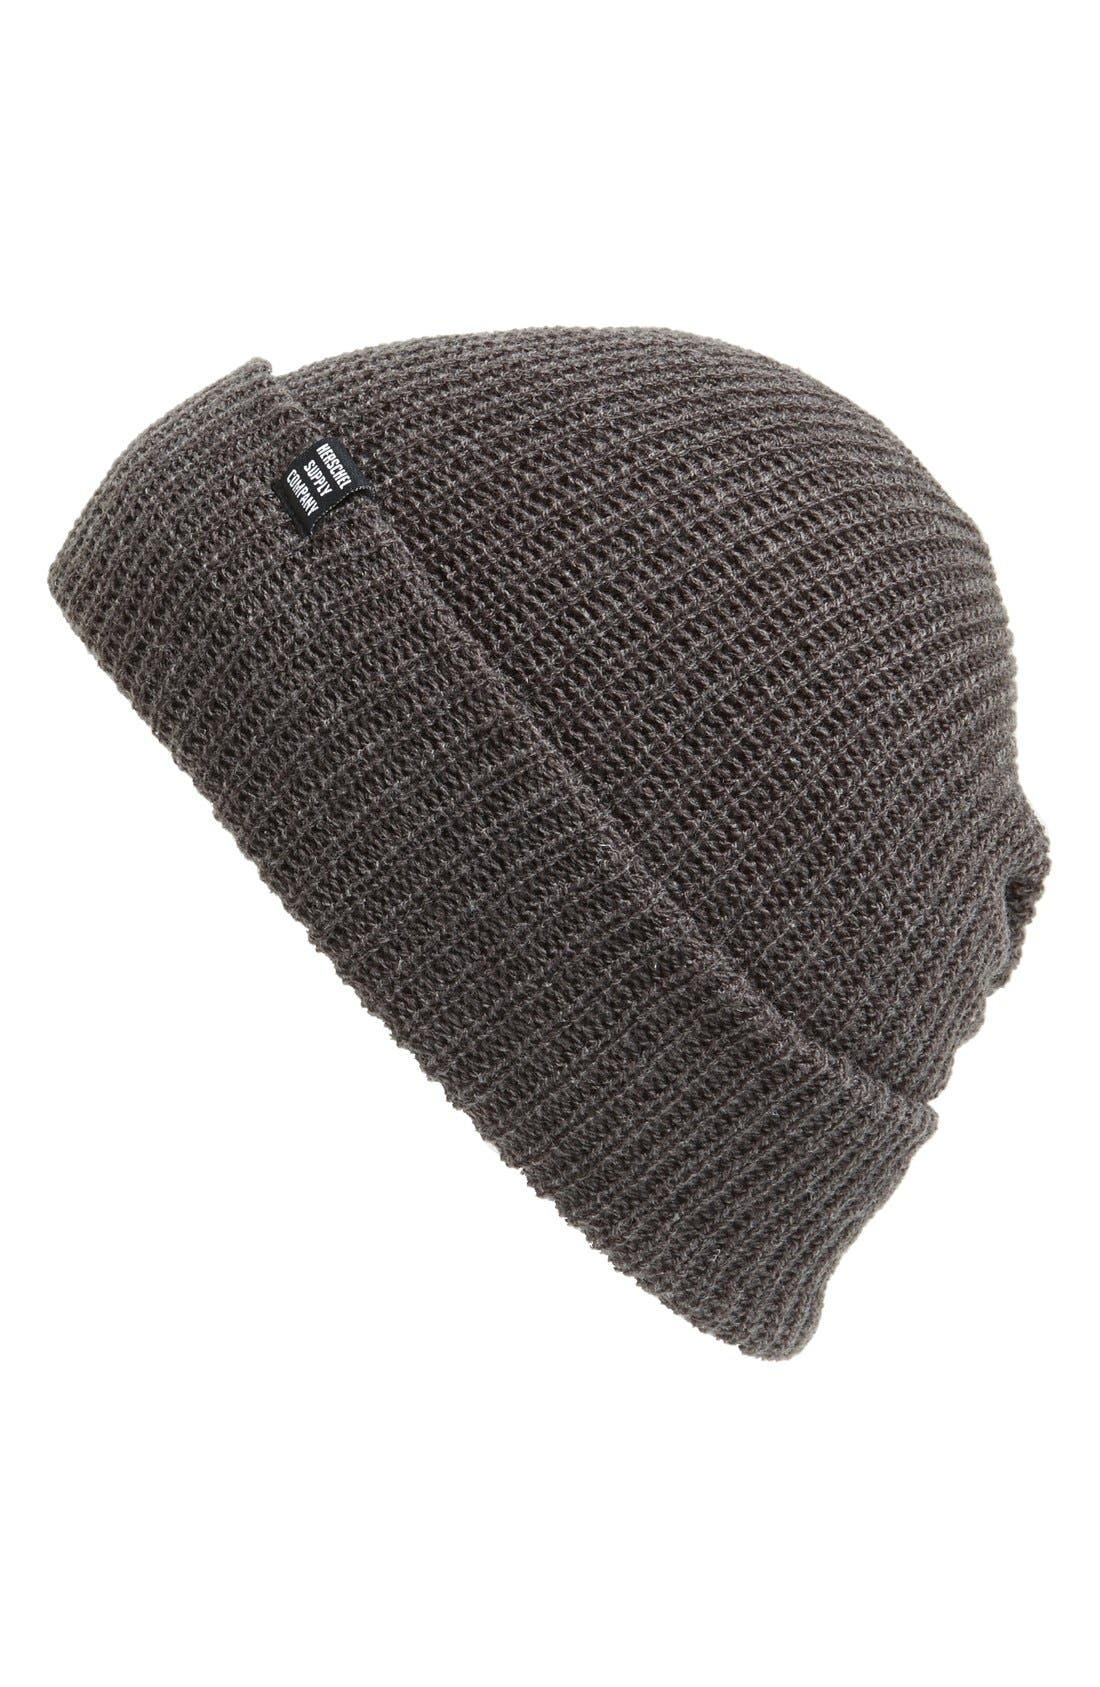 Herschel Supply Co. 'Quartz' Solid Knit Cap